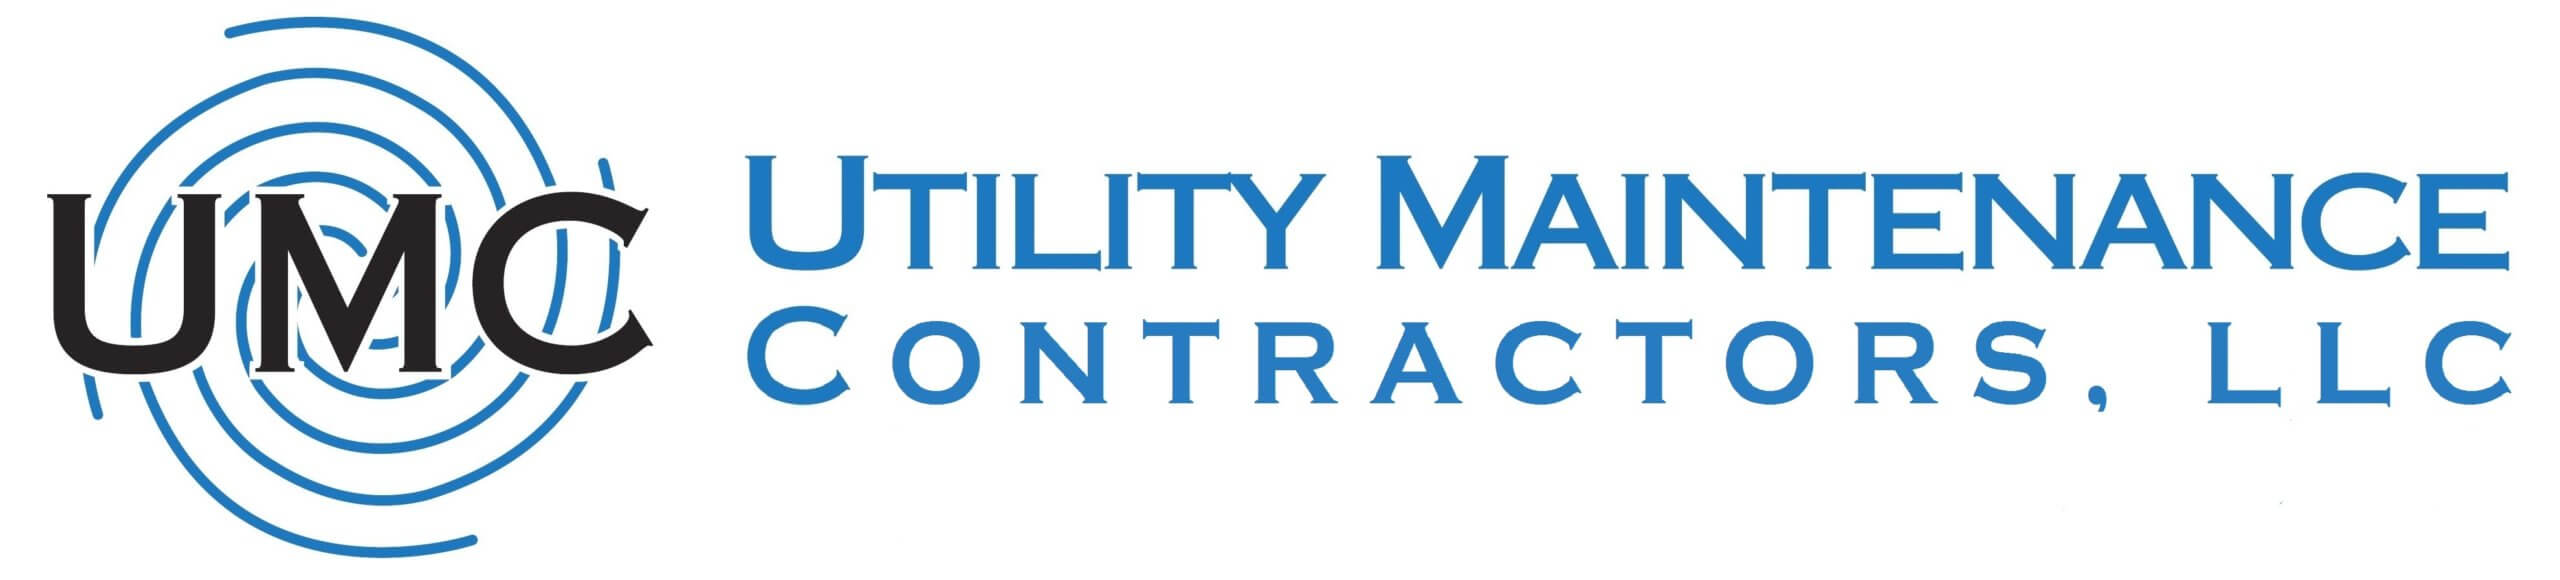 Utility Maintenance Contractors, LLC